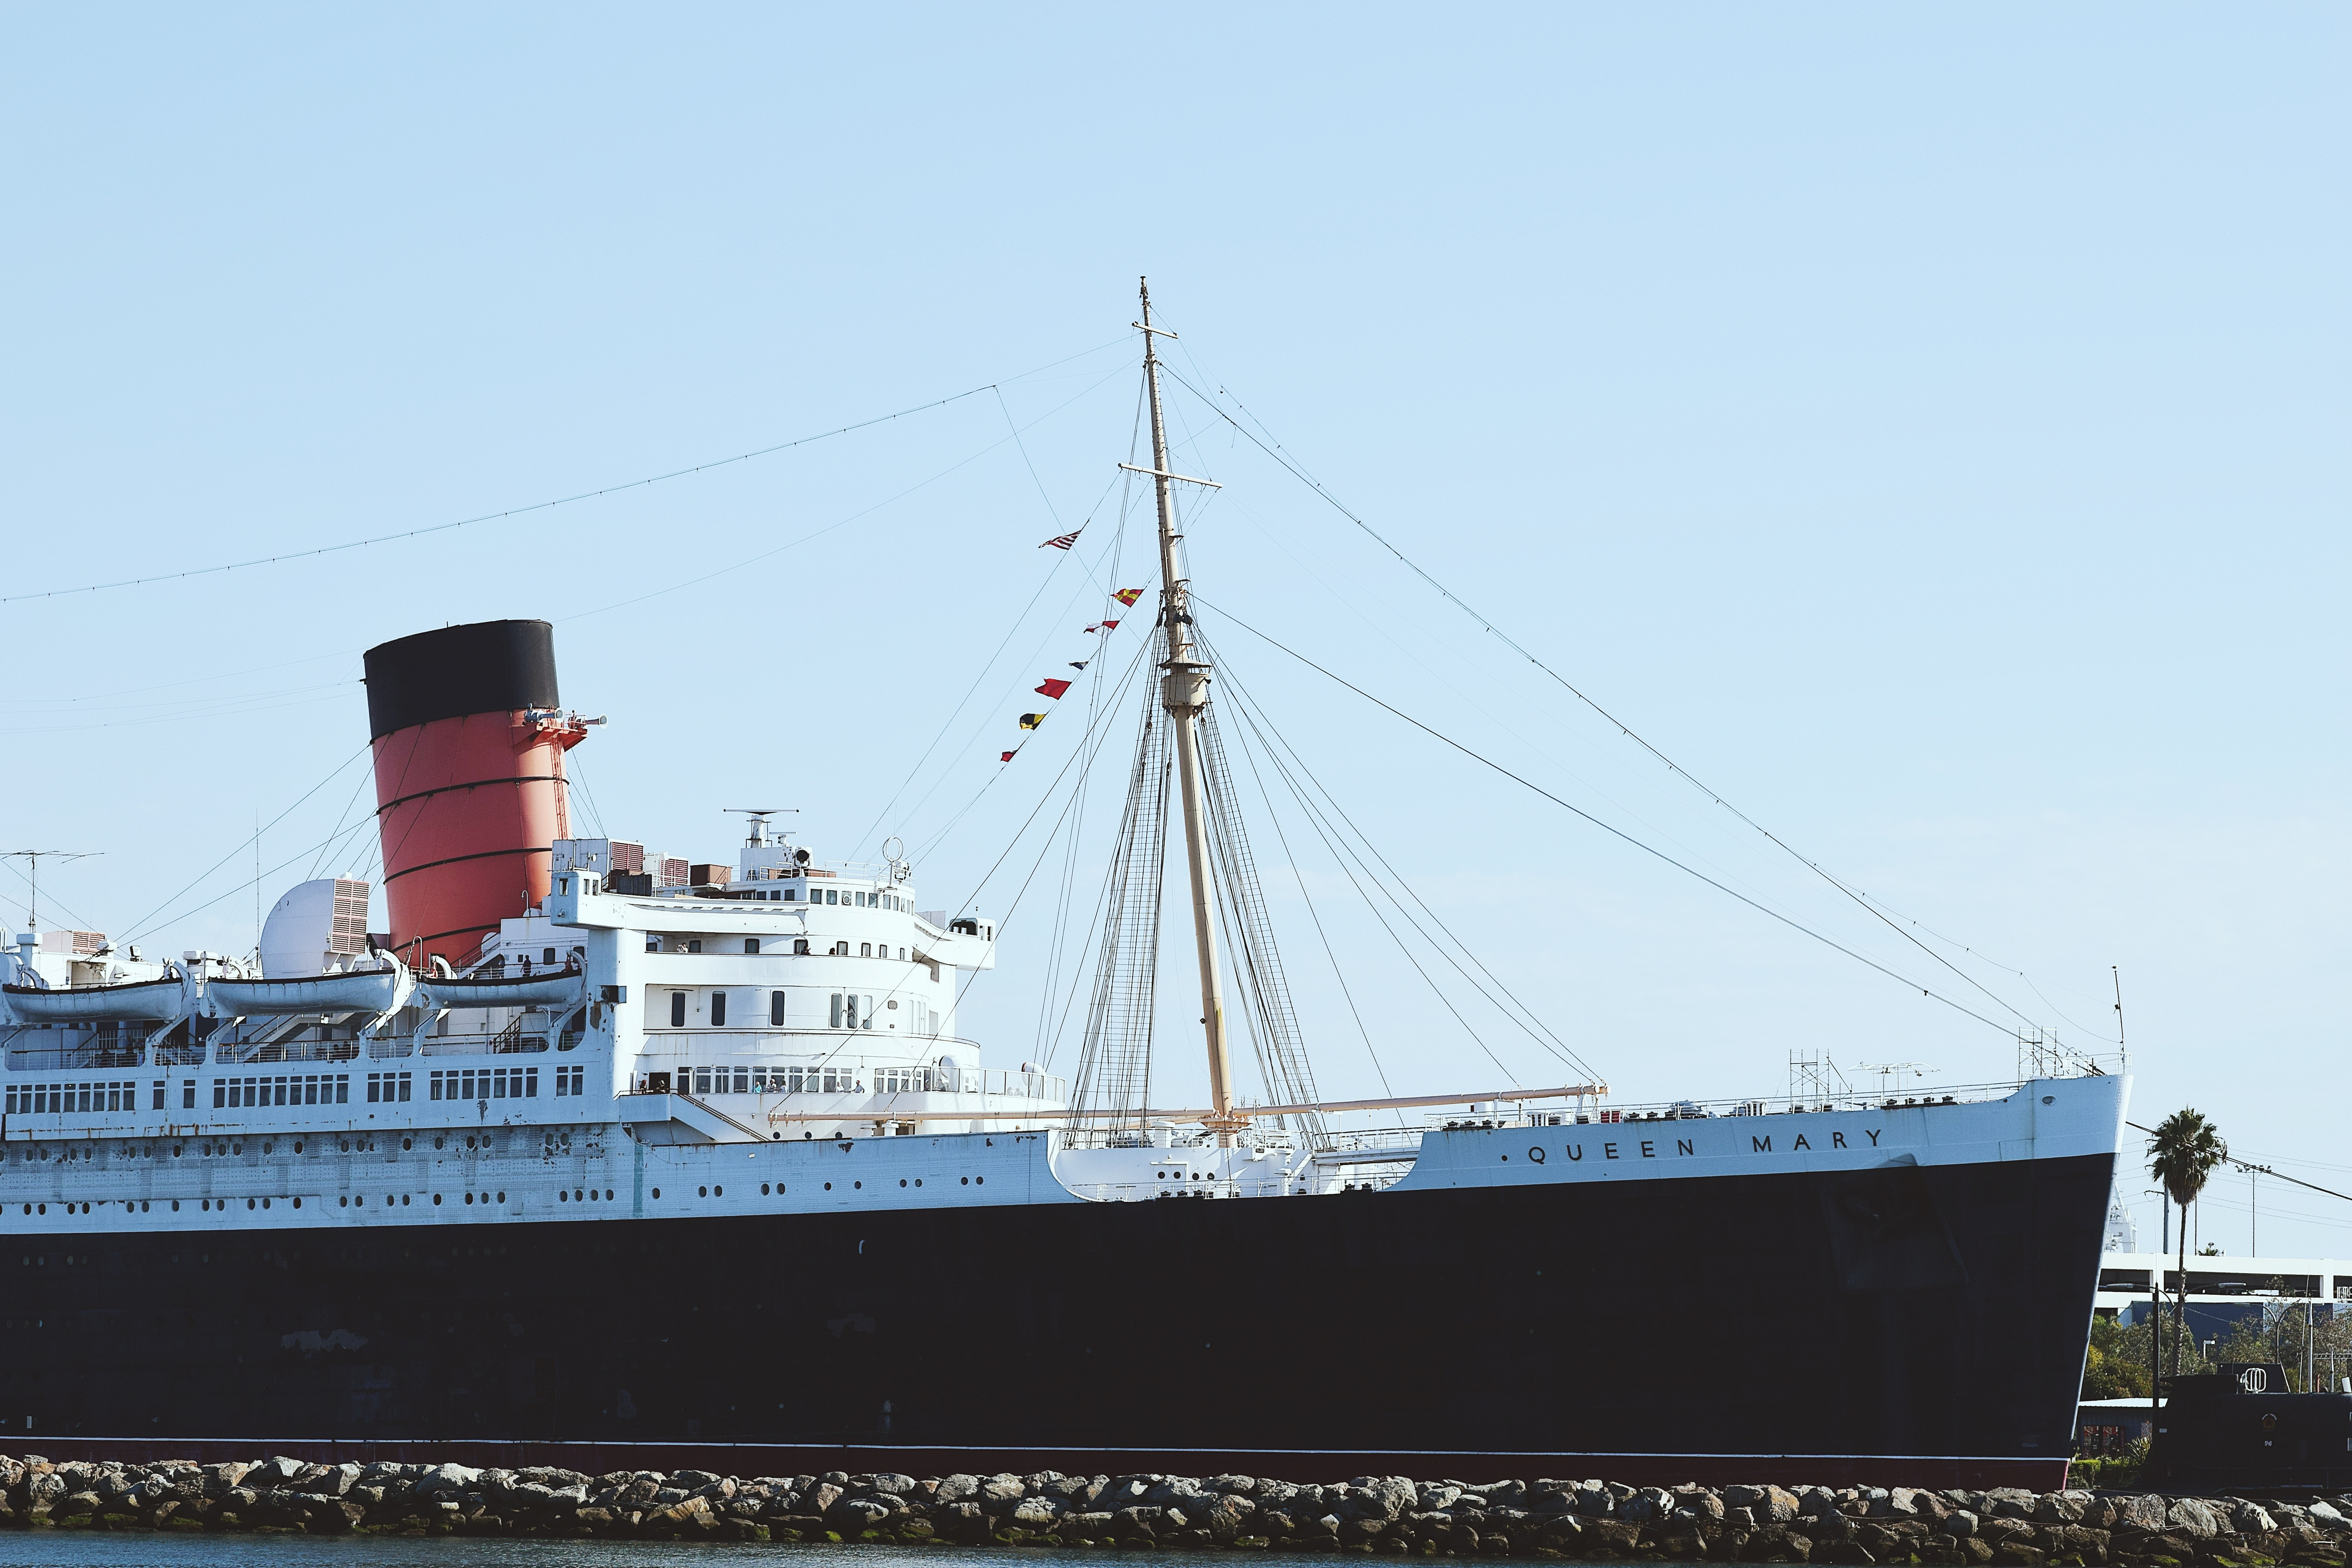 black and white Queen Mary ship